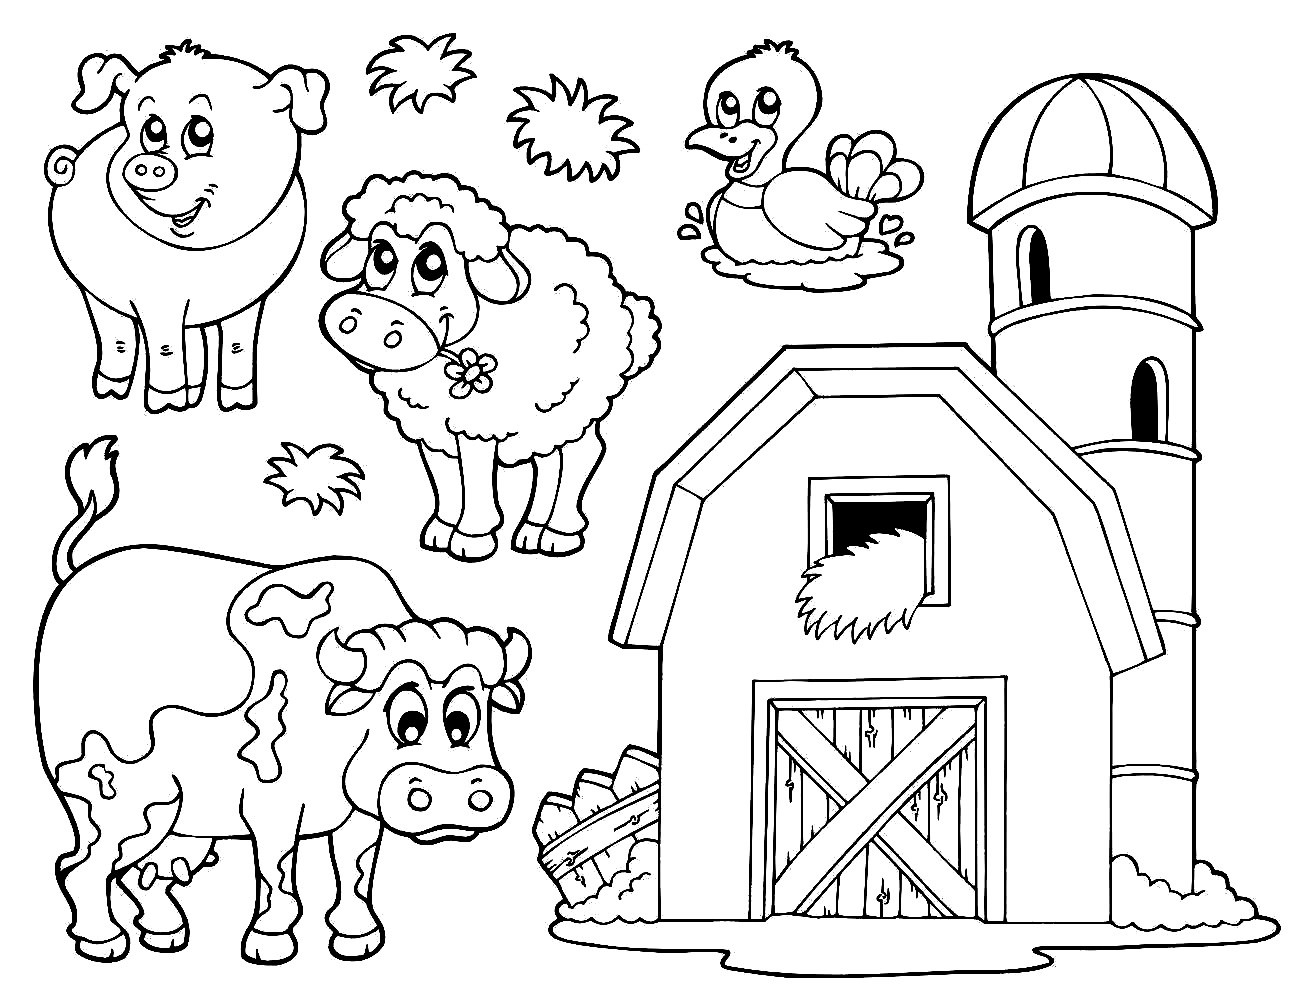 1300x987 Simple Farm Animal Coloring Pages Baby Farm Animal Coloring Pages